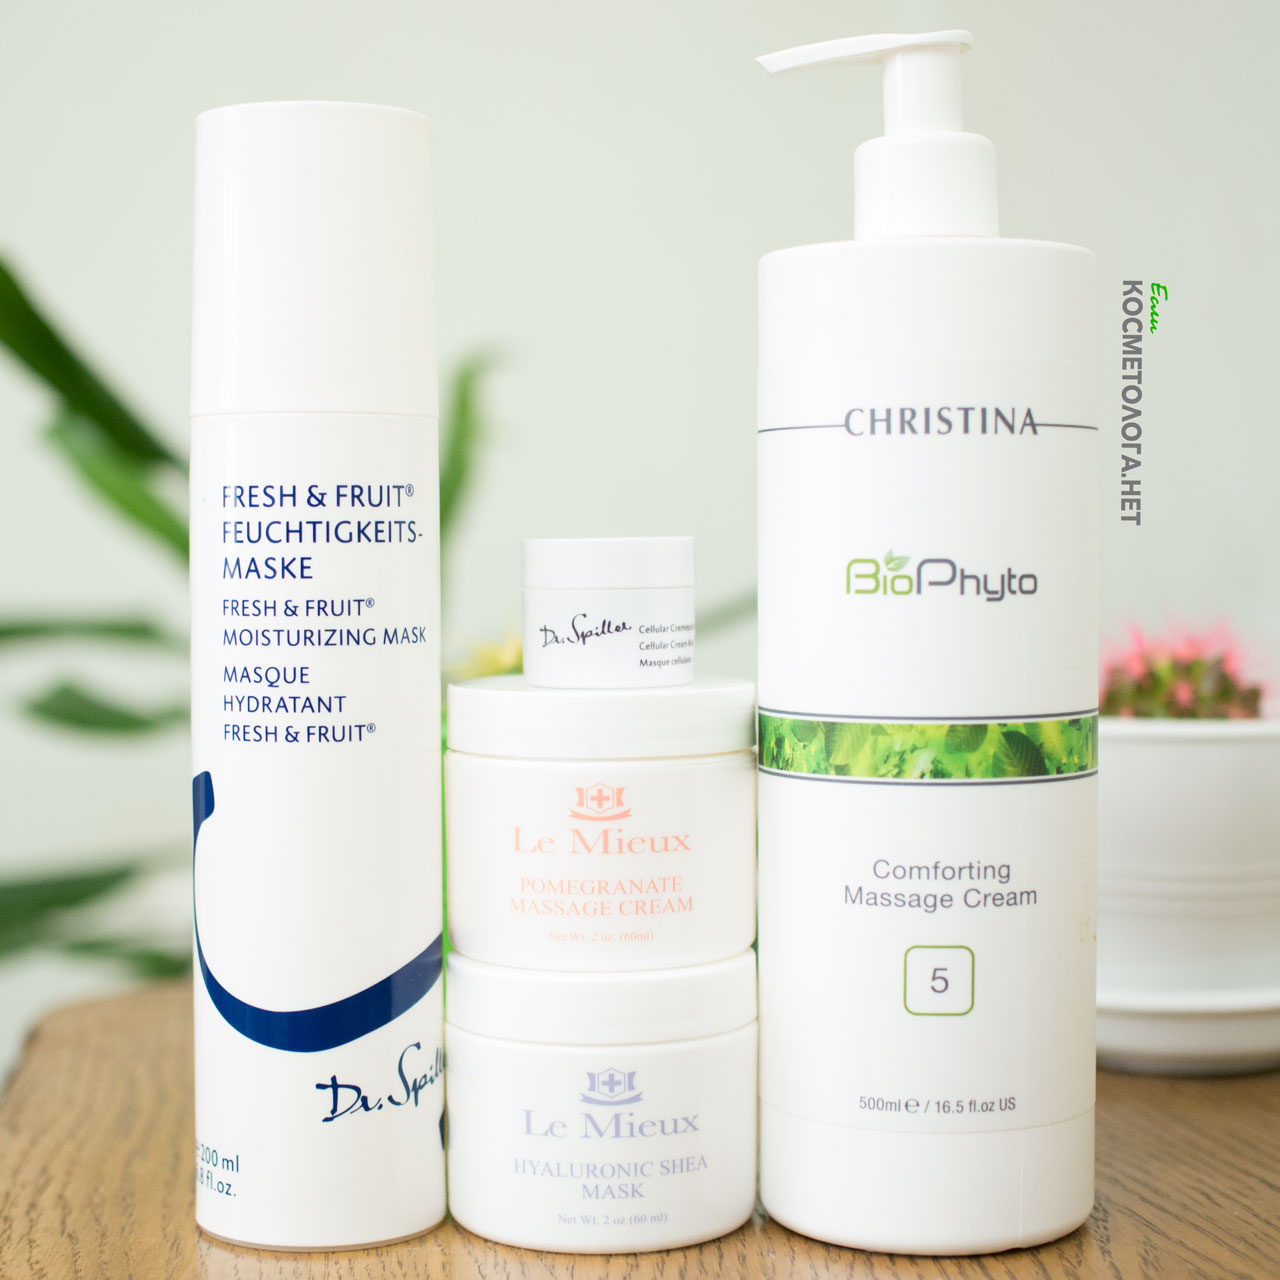 Le Mieux – Pomegranate Massage Cream, Le Mieux – Hyaluronic Shea Mask, Dr. Spiller – Fresh and Fruit Moisturizing Mask, Dr. Spiller – Cellular Cream Mask, Christina – Bio Phyto Comforting Massage Cream